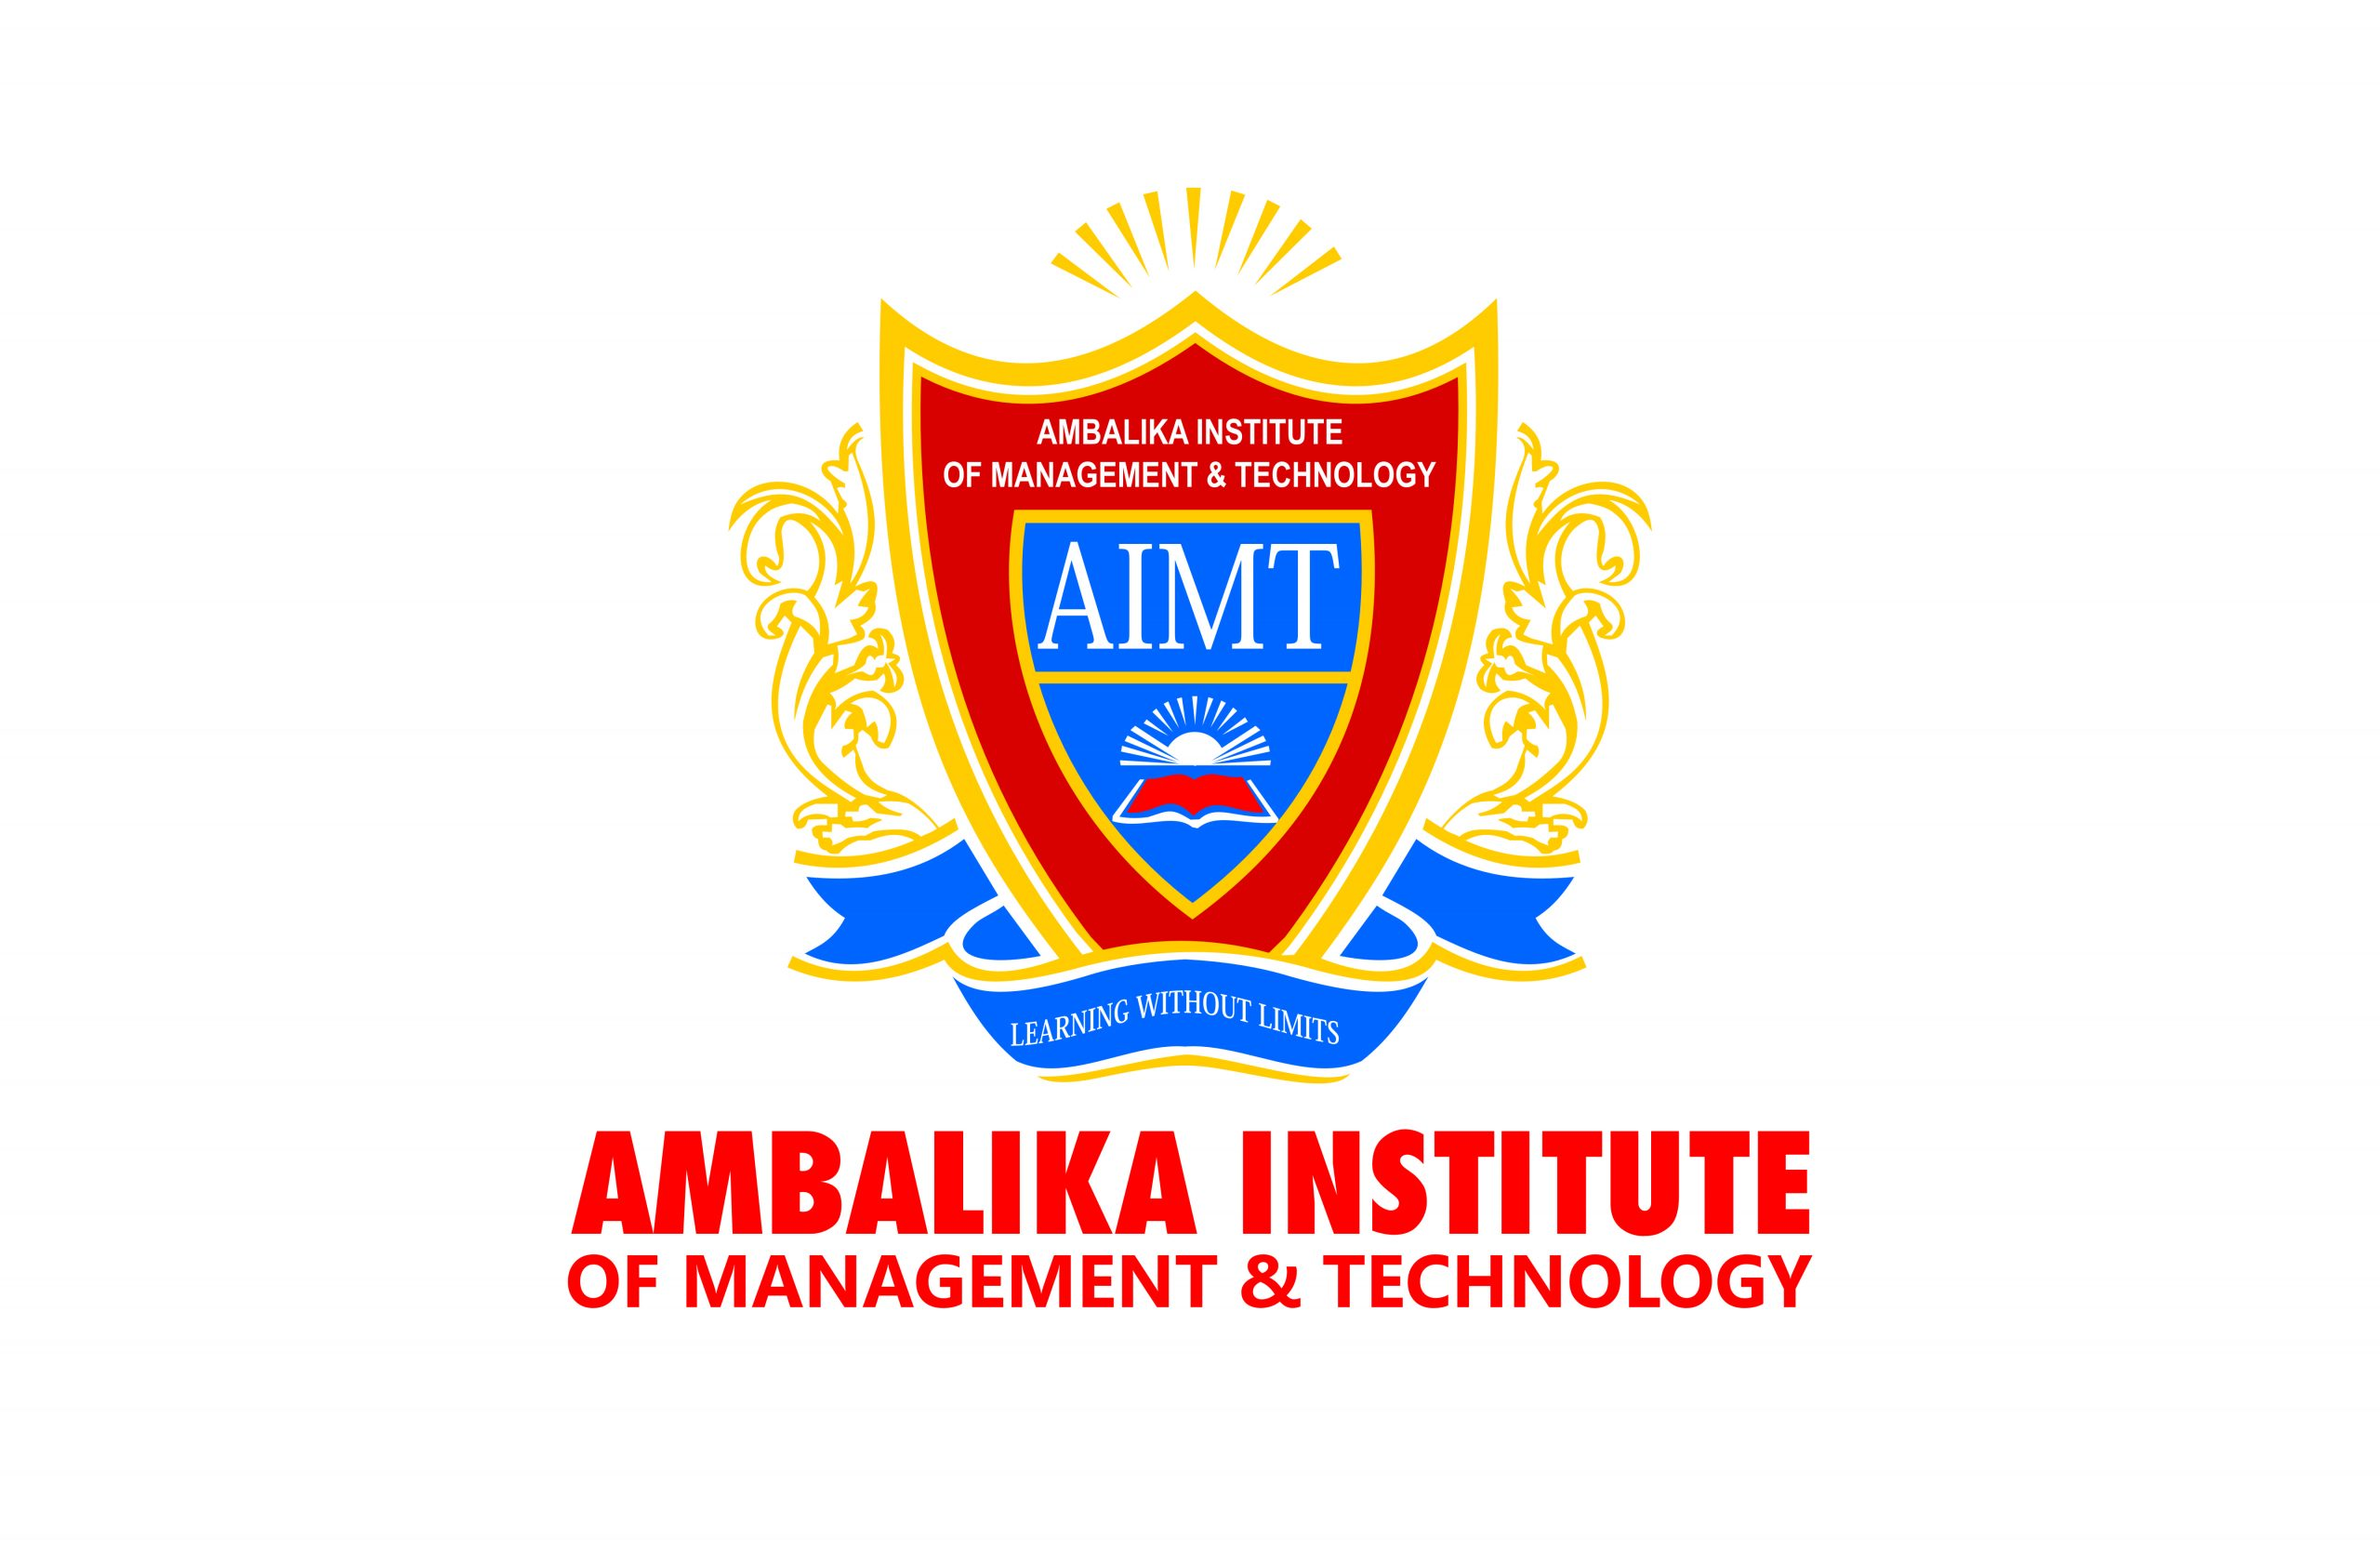 Ambalika Institute of Management & Technology